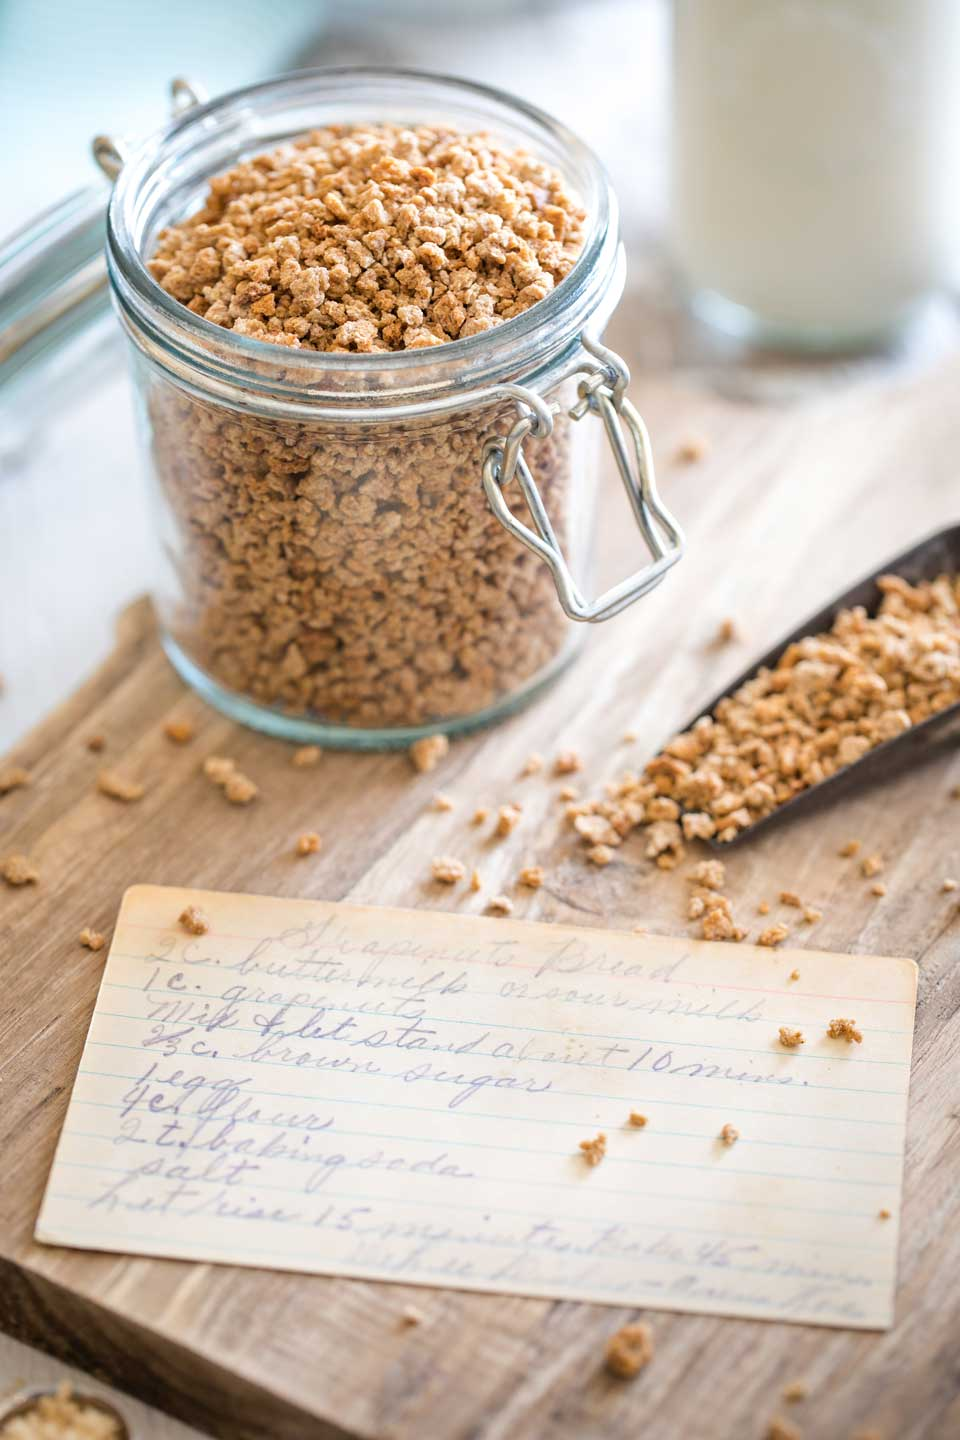 my Grandma's faded, yellowing recipe card laid on a wooden cutting board with a glass canister and scoop of Grape-Nuts cereal nearby and buttermilk in the background